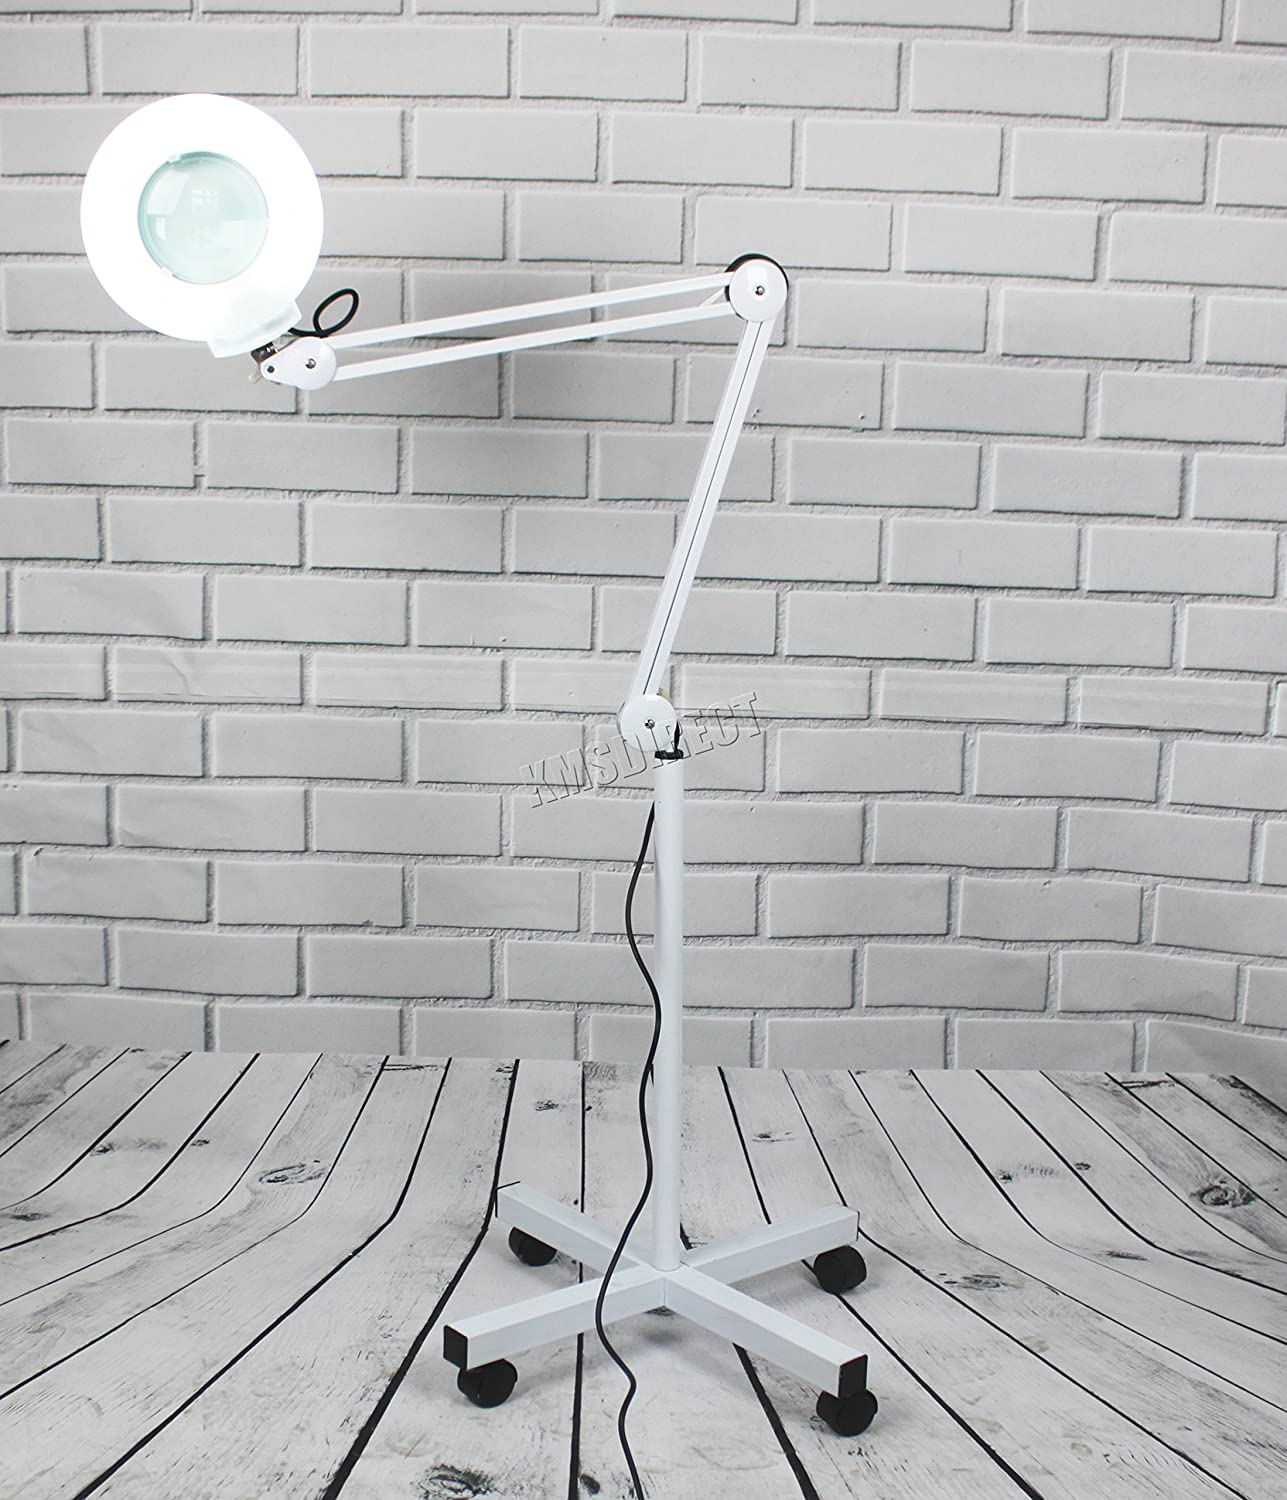 FoxHunter 5x Magnifier Vertical Clip Floor Stand Lamp Glass Adjustable Rolling Diopter Salon SPA Beauty Makeup Skincare Nail Tattoo Light Magnifying Tool White ML01 New KMS